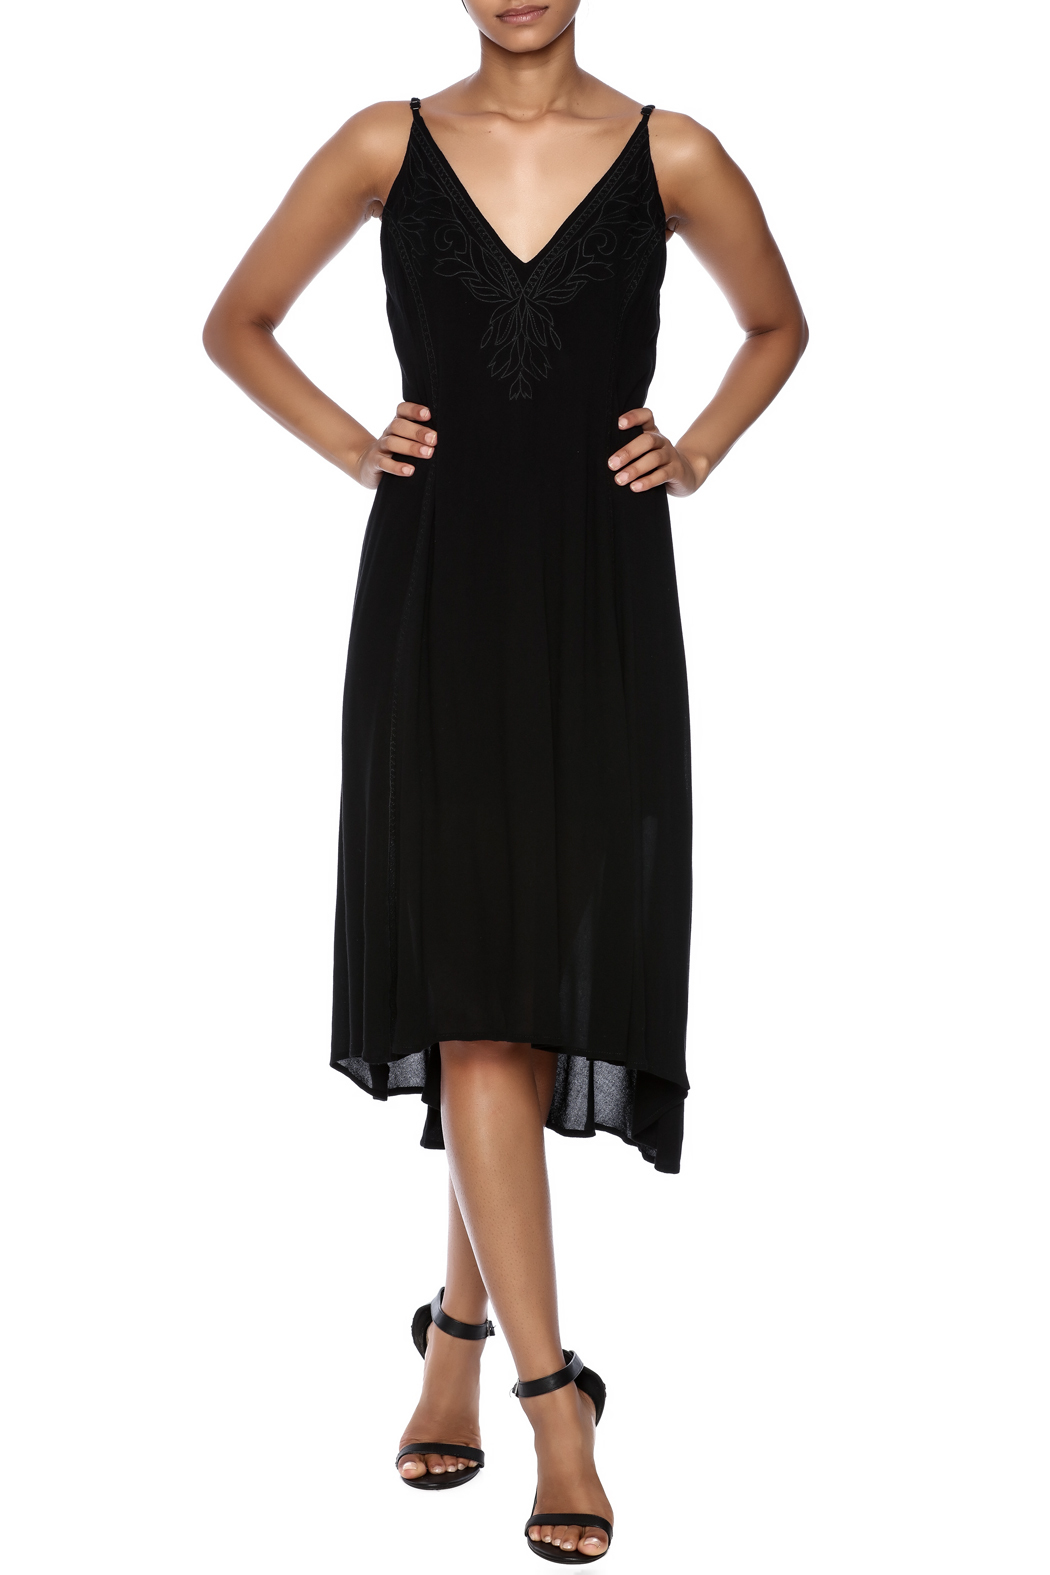 Lush Braelyn Embroidered Dress - Main Image